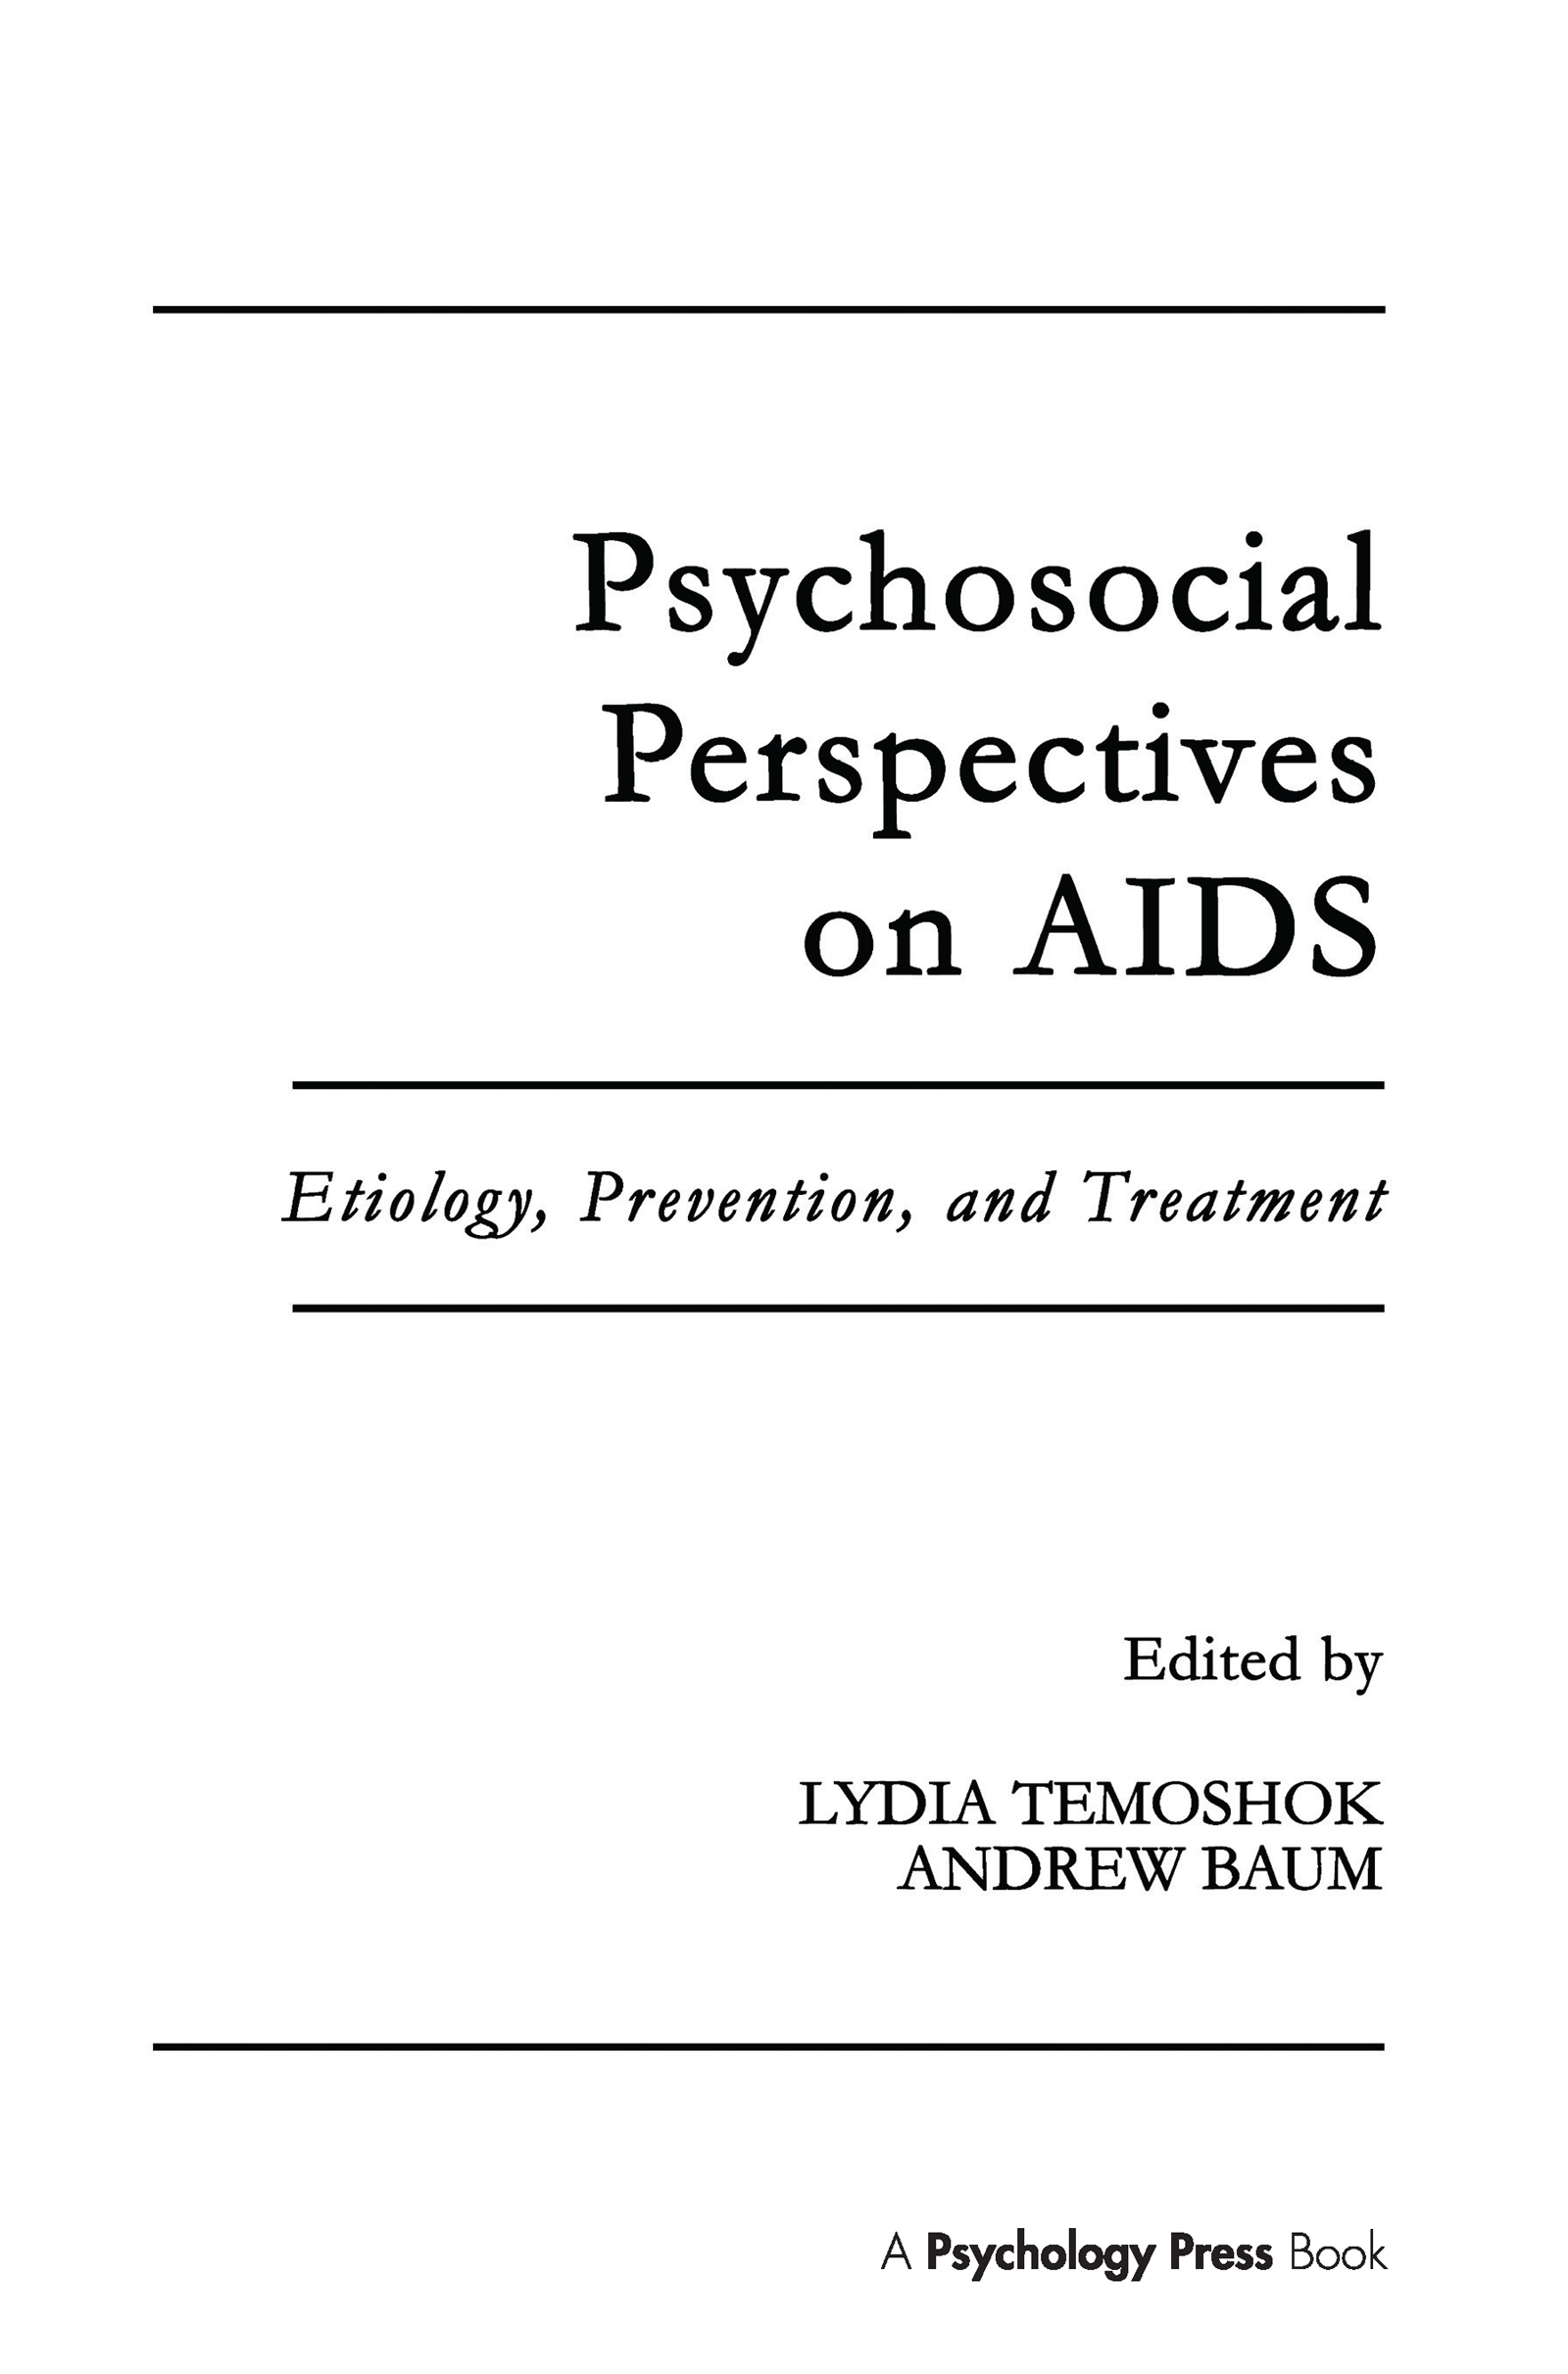 Psychosocial Perspectives on Aids: Etiology, Prevention and Treatment book cover